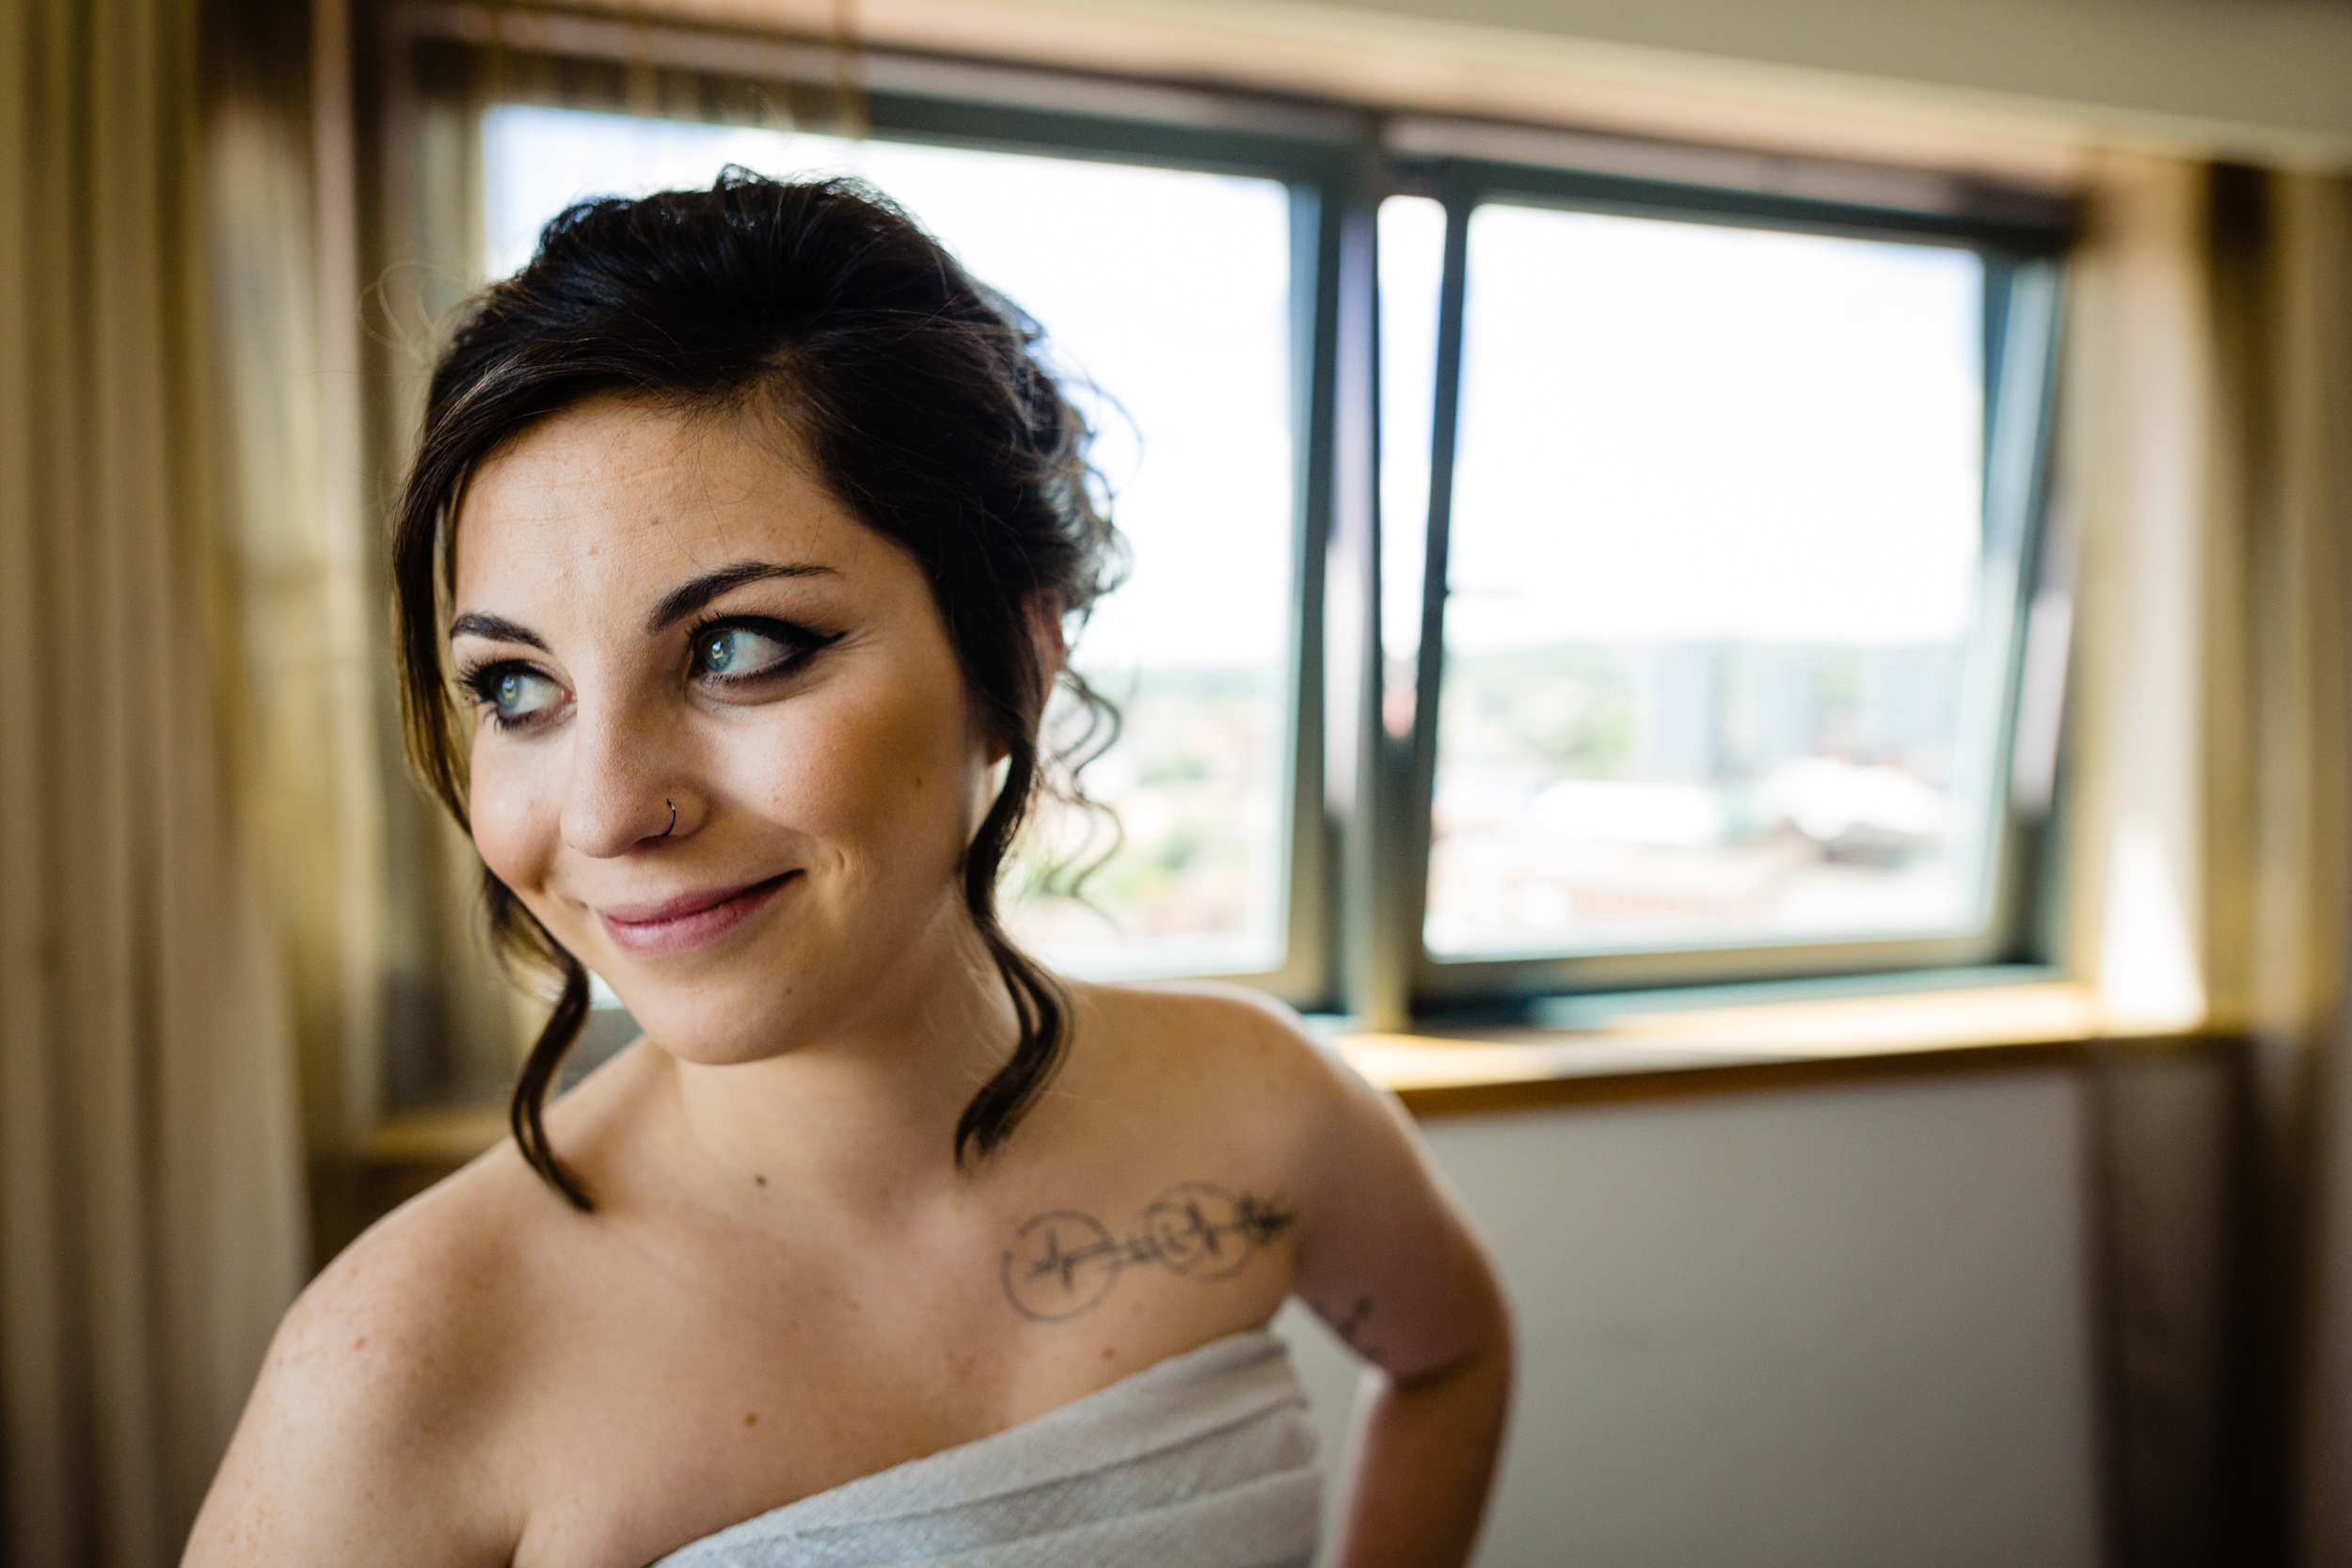 bride smiling before she leaves for ceremony. plough inn, hathersage wedding photography by emma and rich.